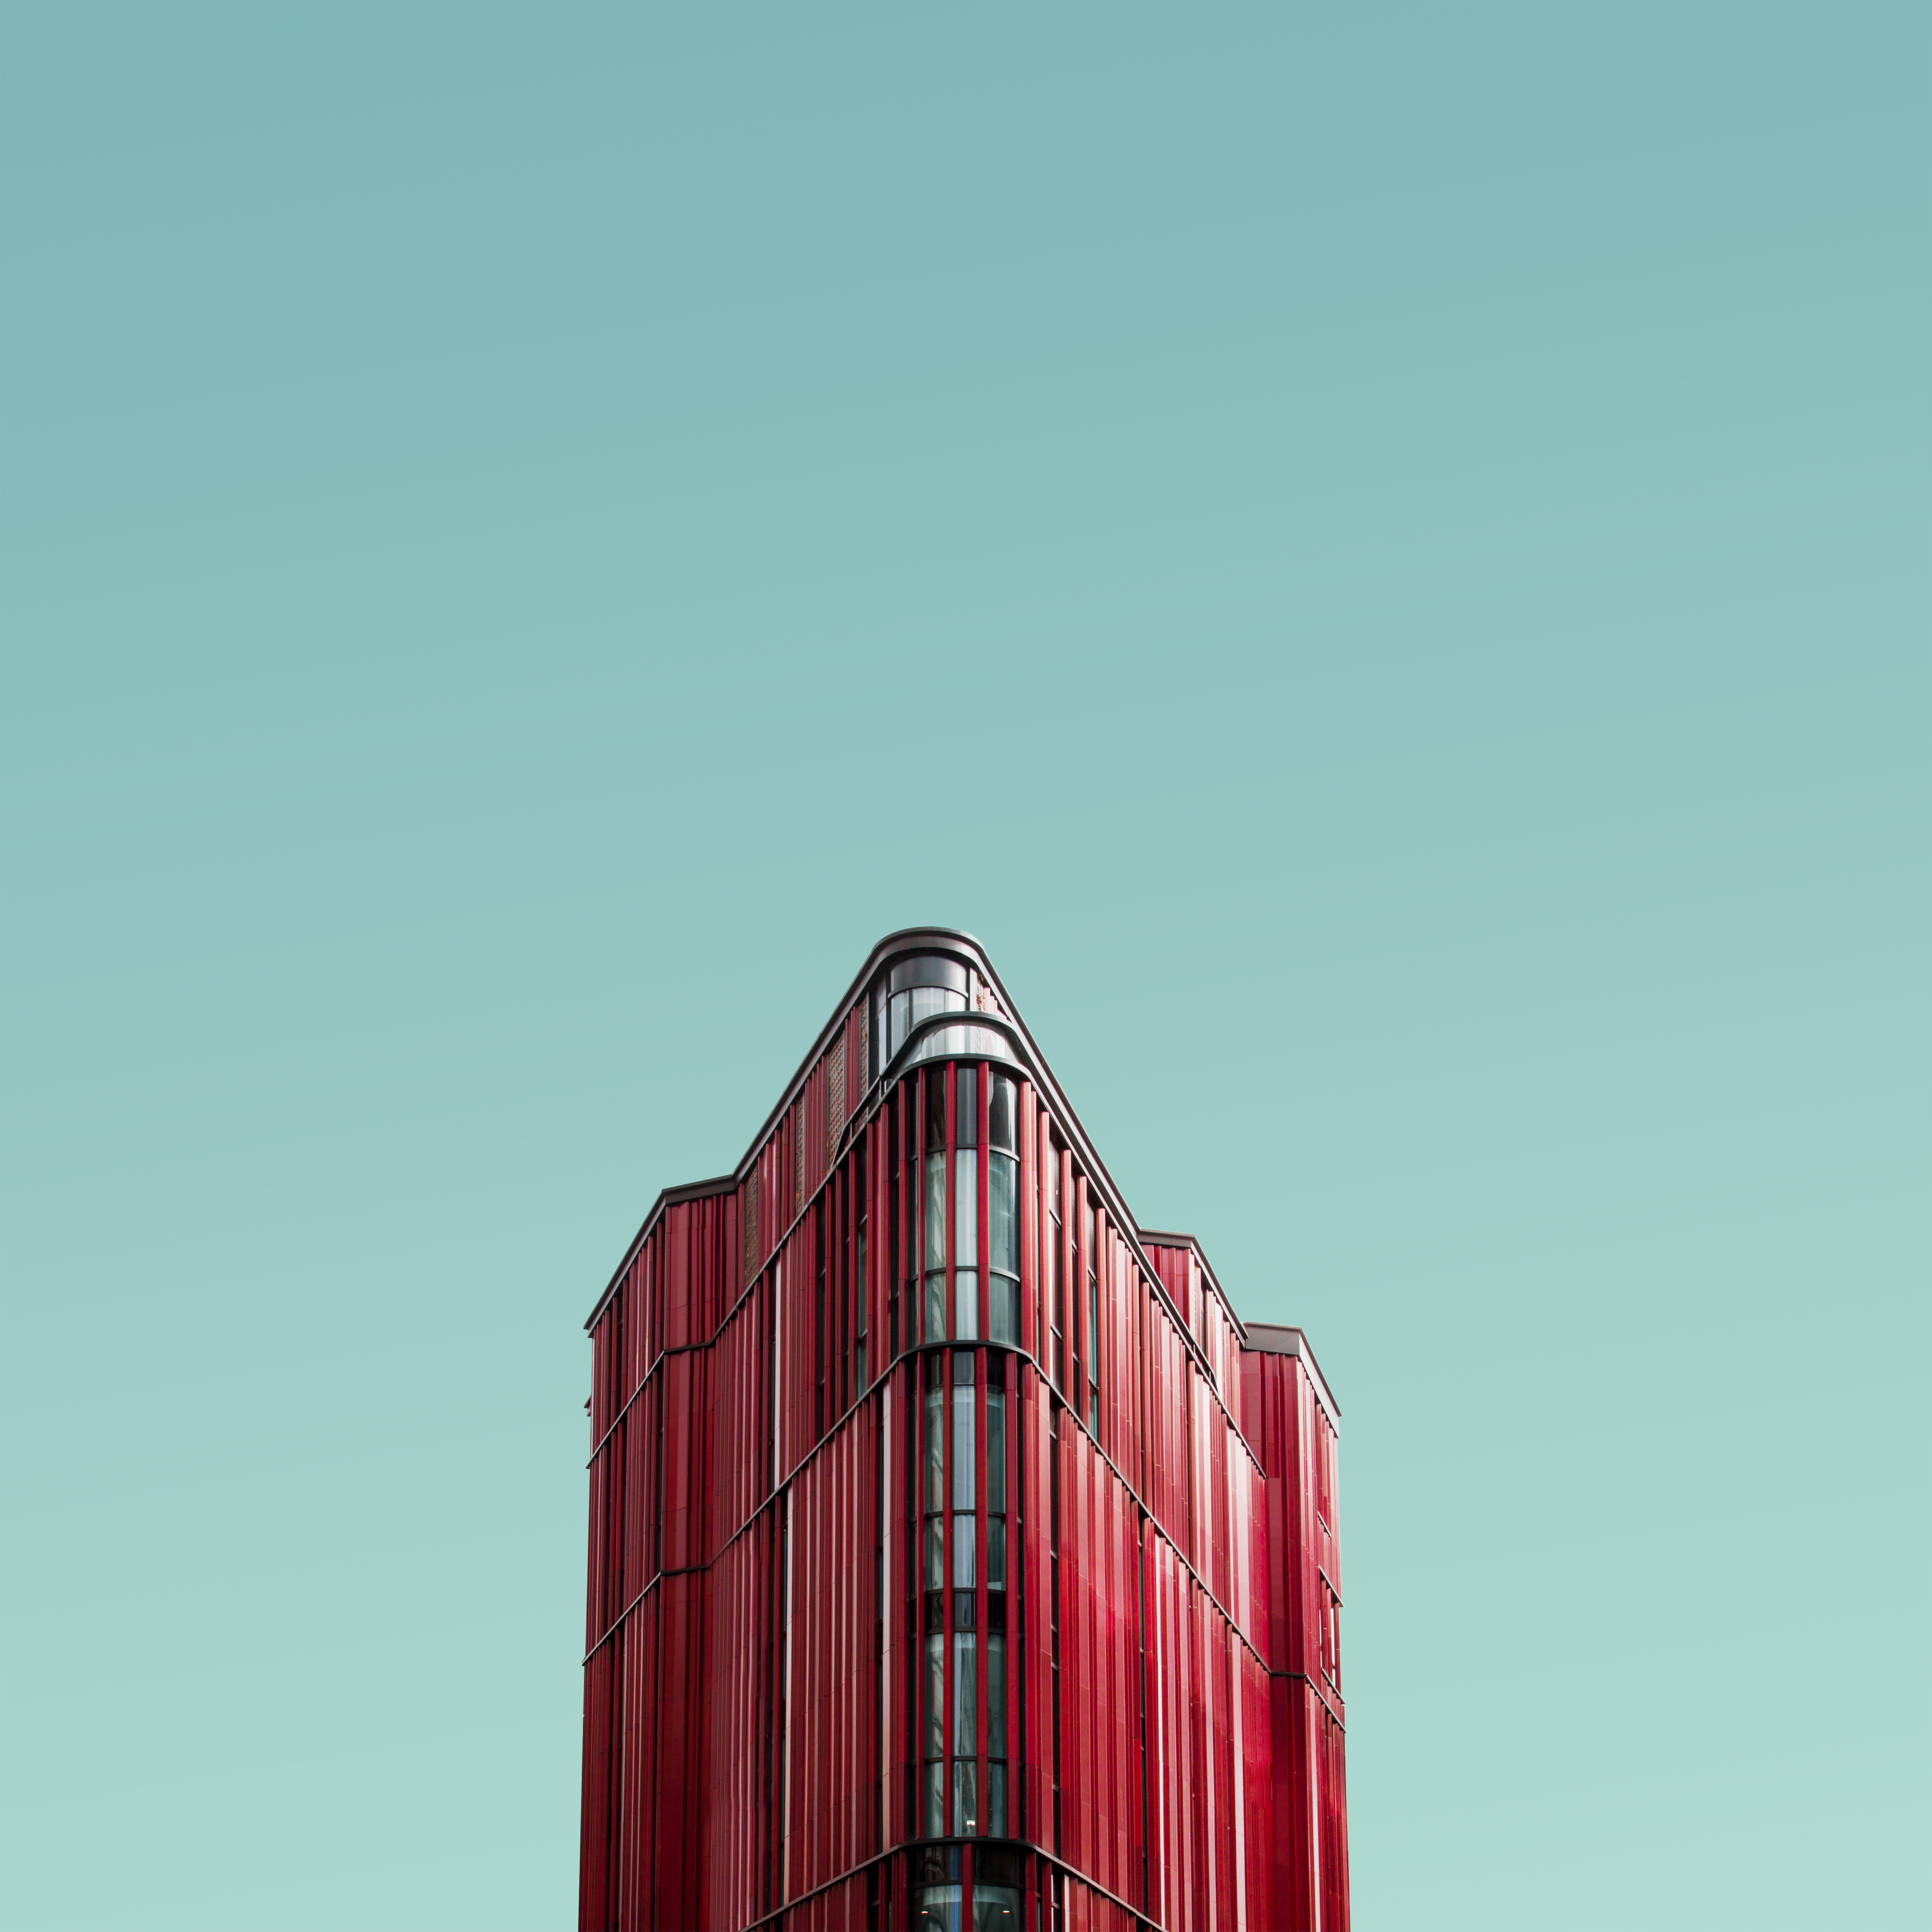 worm's eye view photography of red glass building